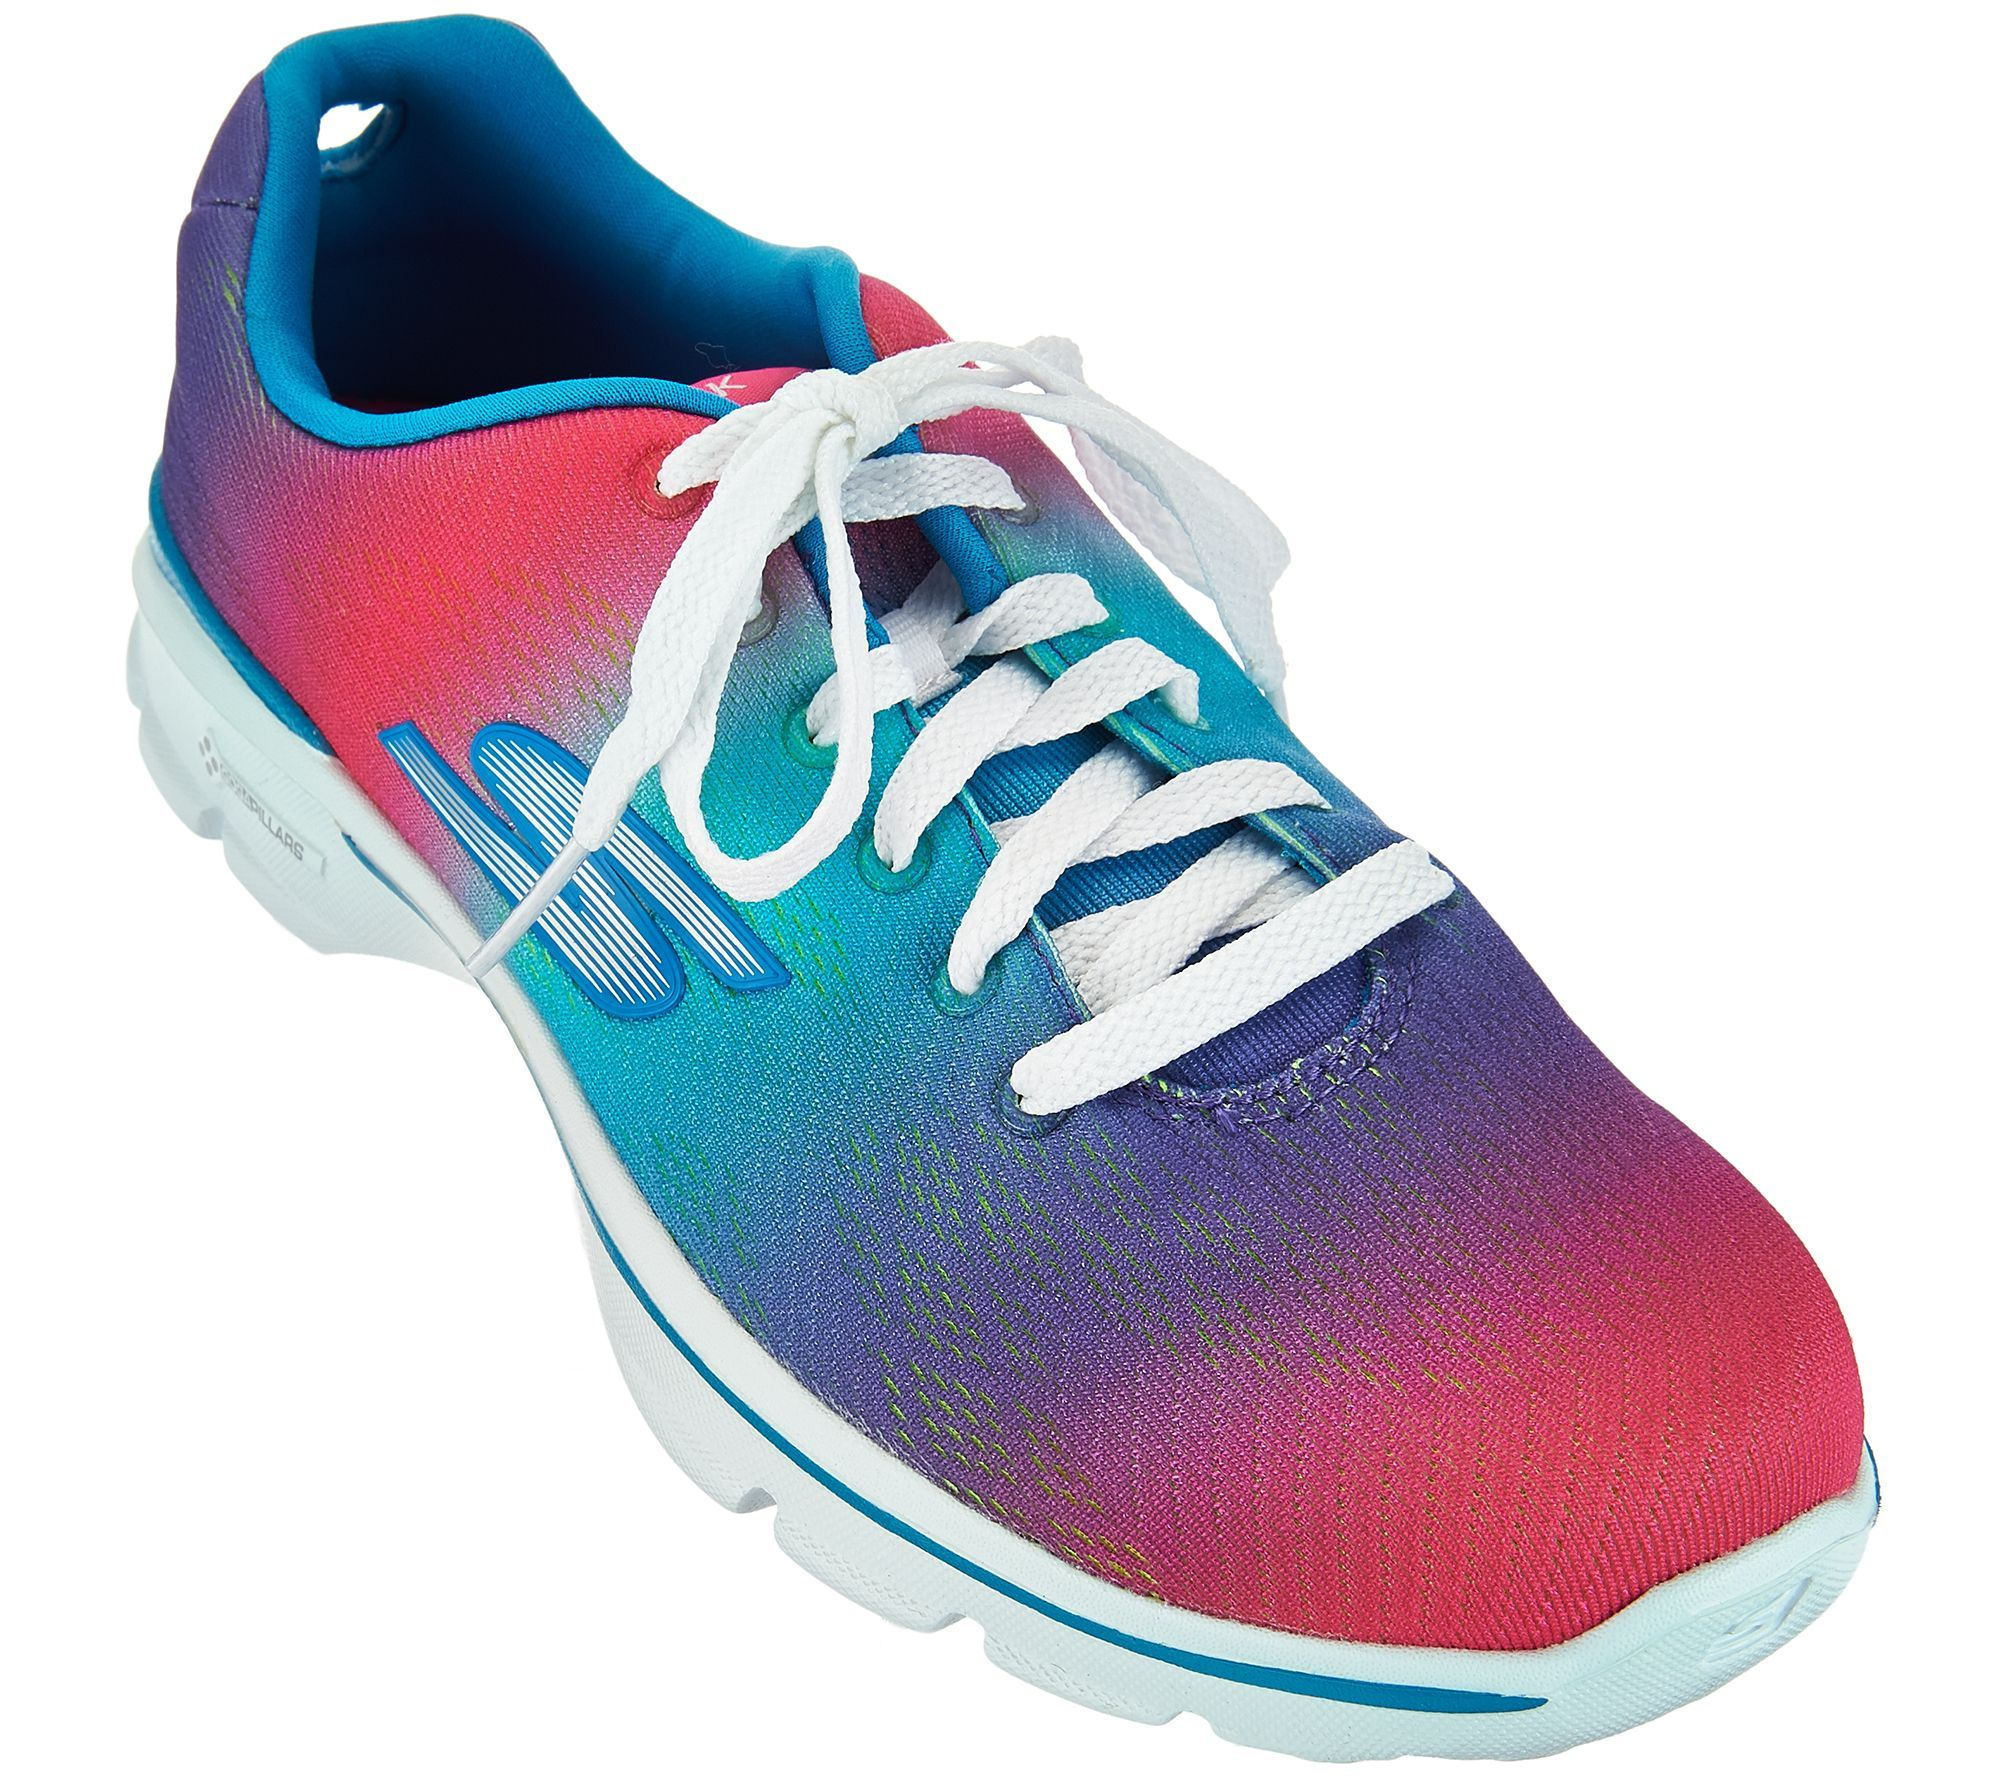 Skechers Go Walk 3 Lace Up Sneakers Pulse Qvc Com Sneakers